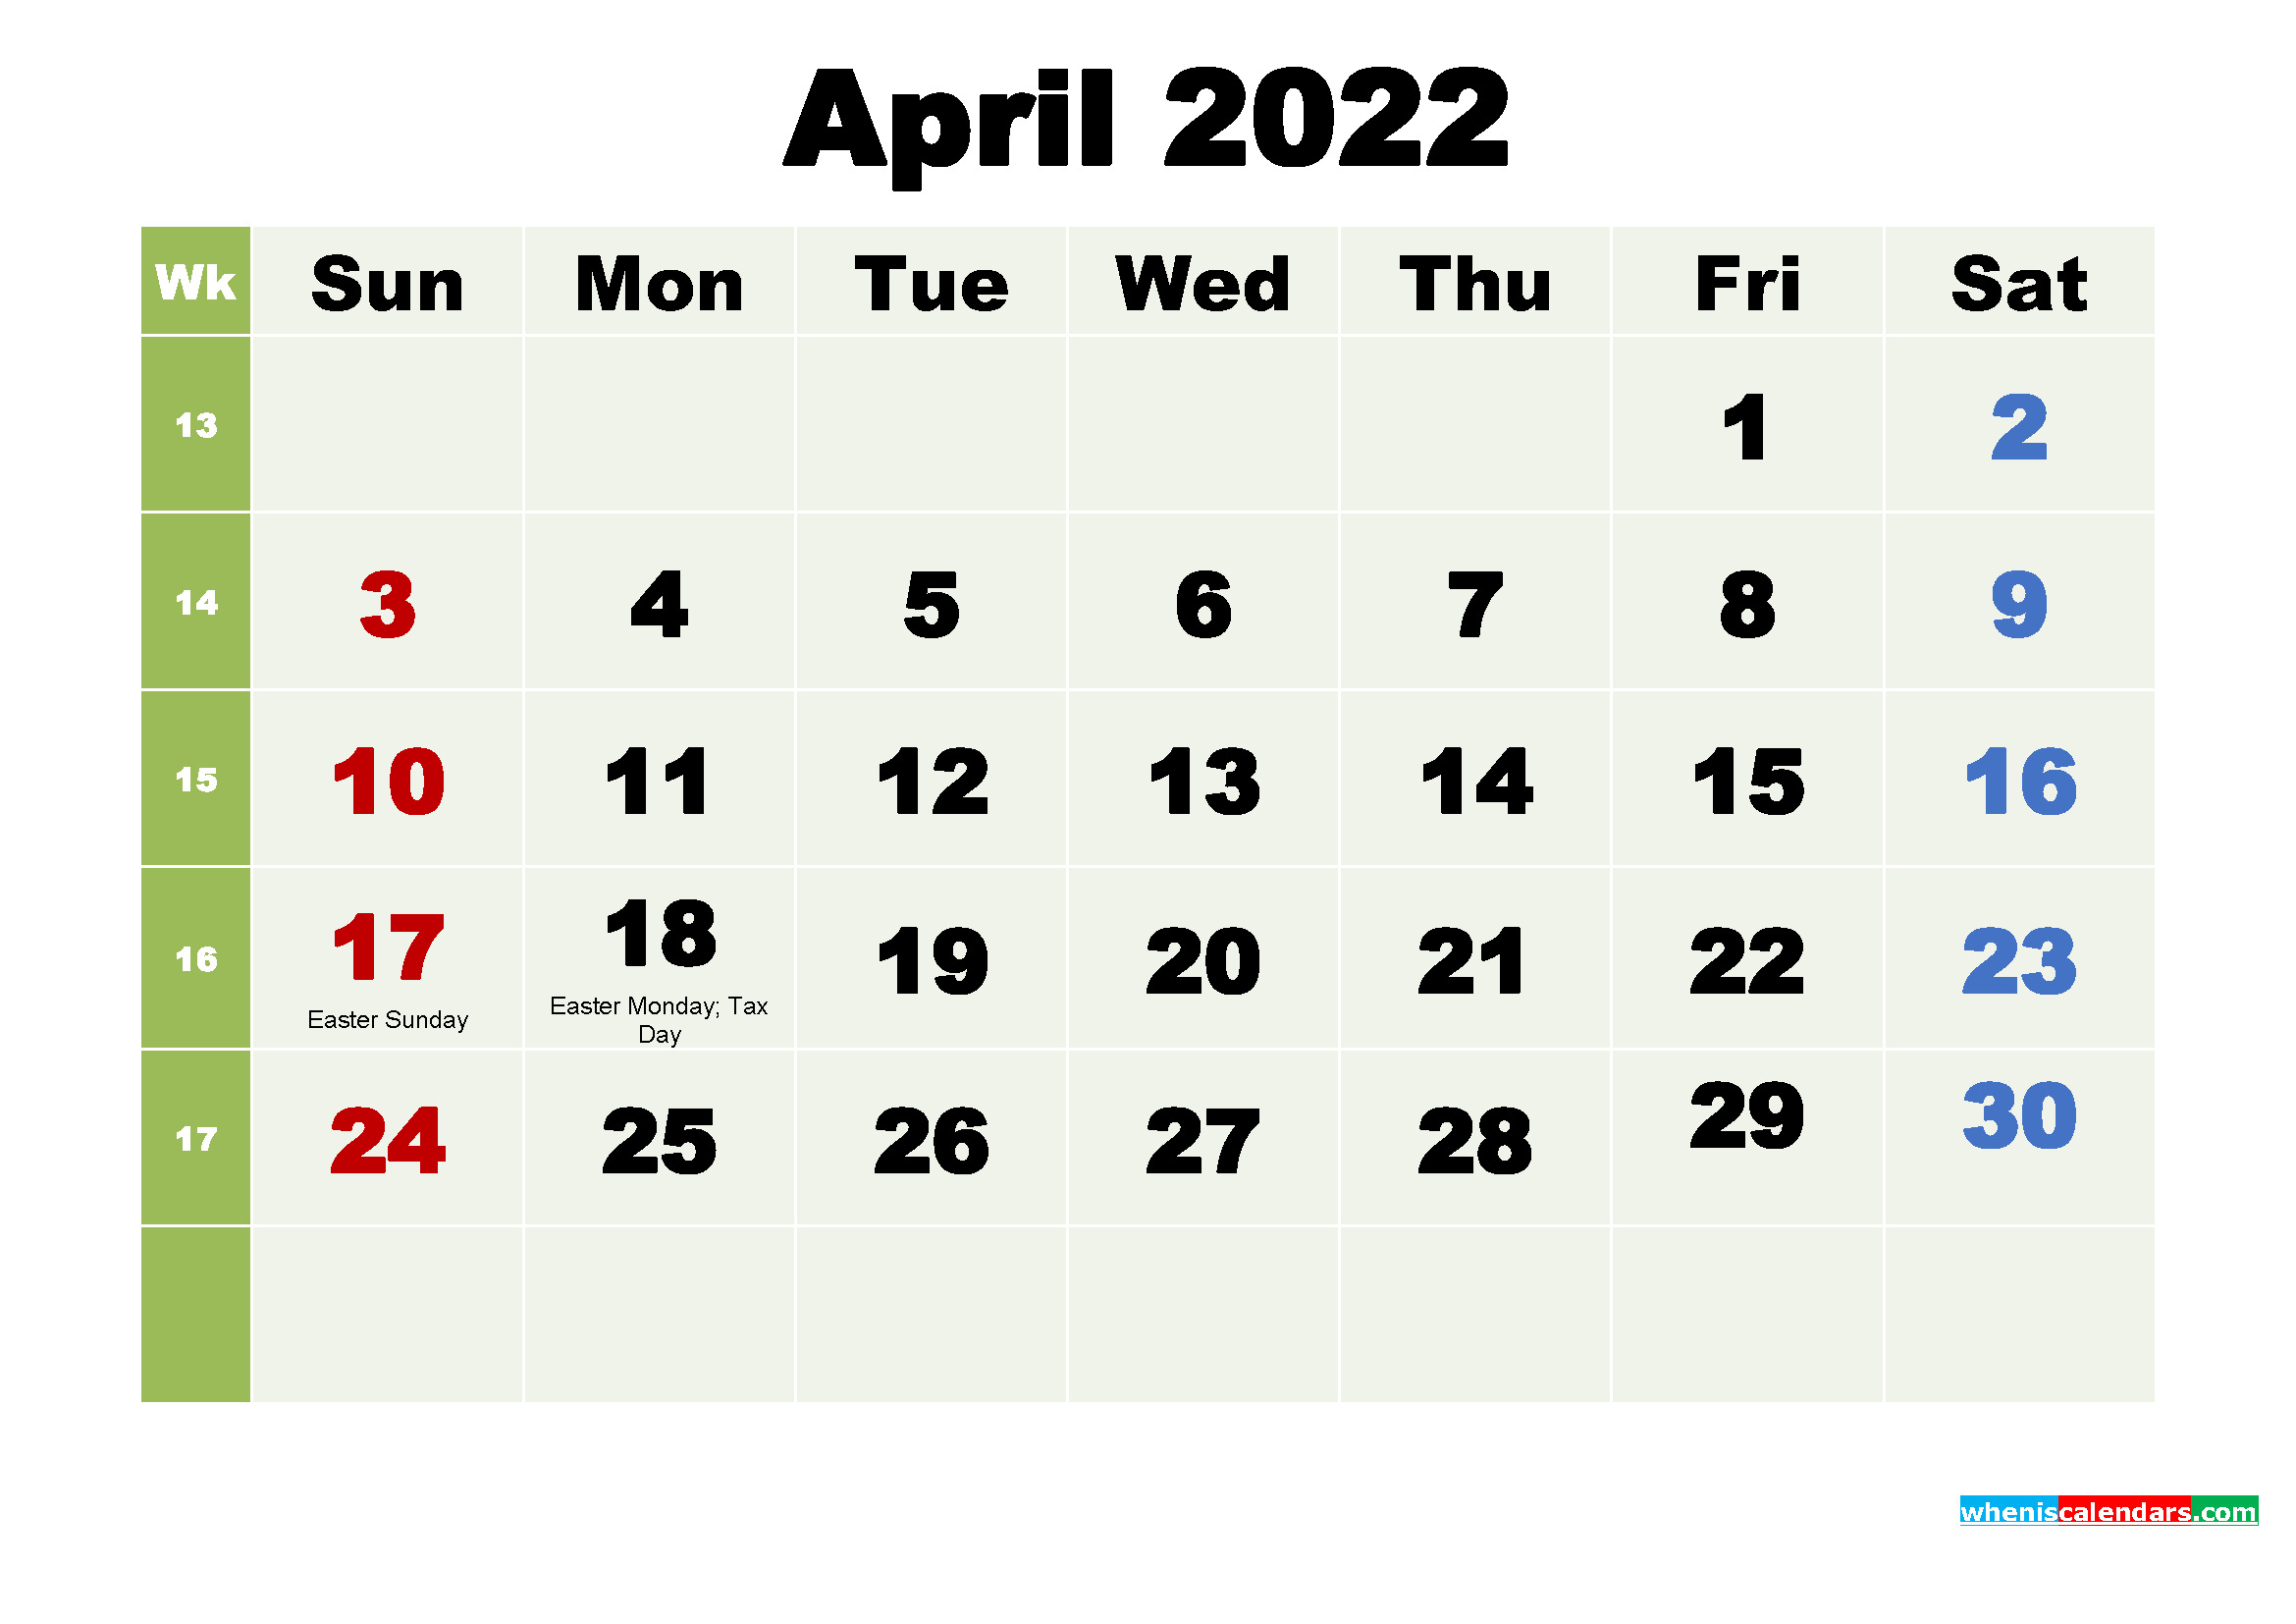 Printable April 2022 Calendar by Month